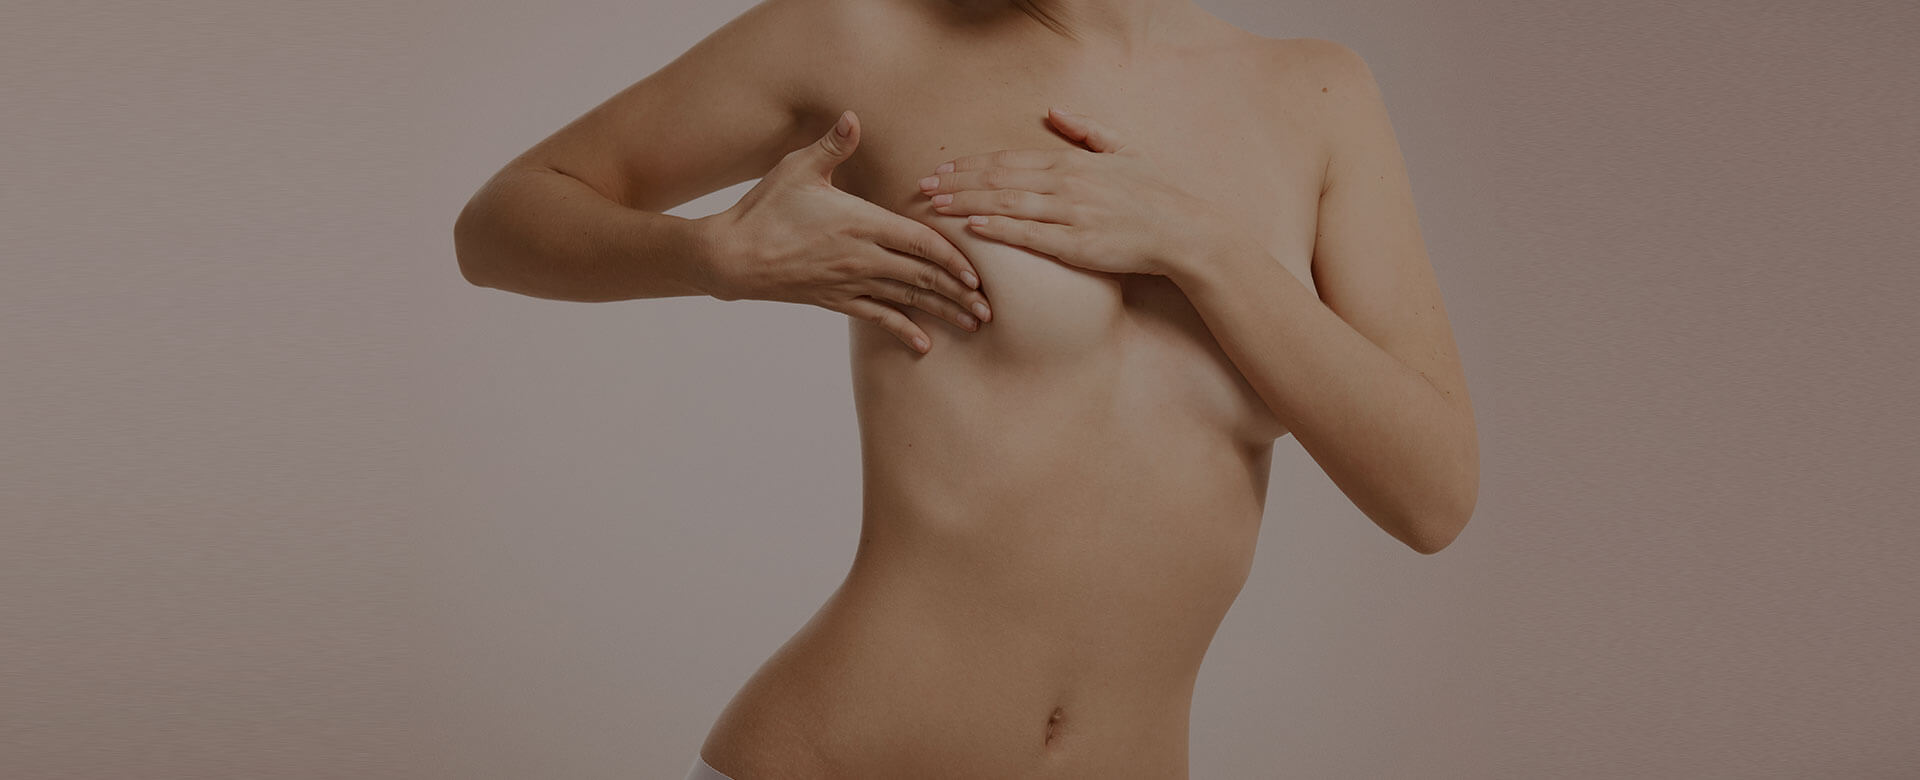 Breast implants and cancer: link confirmed. Expanded stem cells are a valuable option